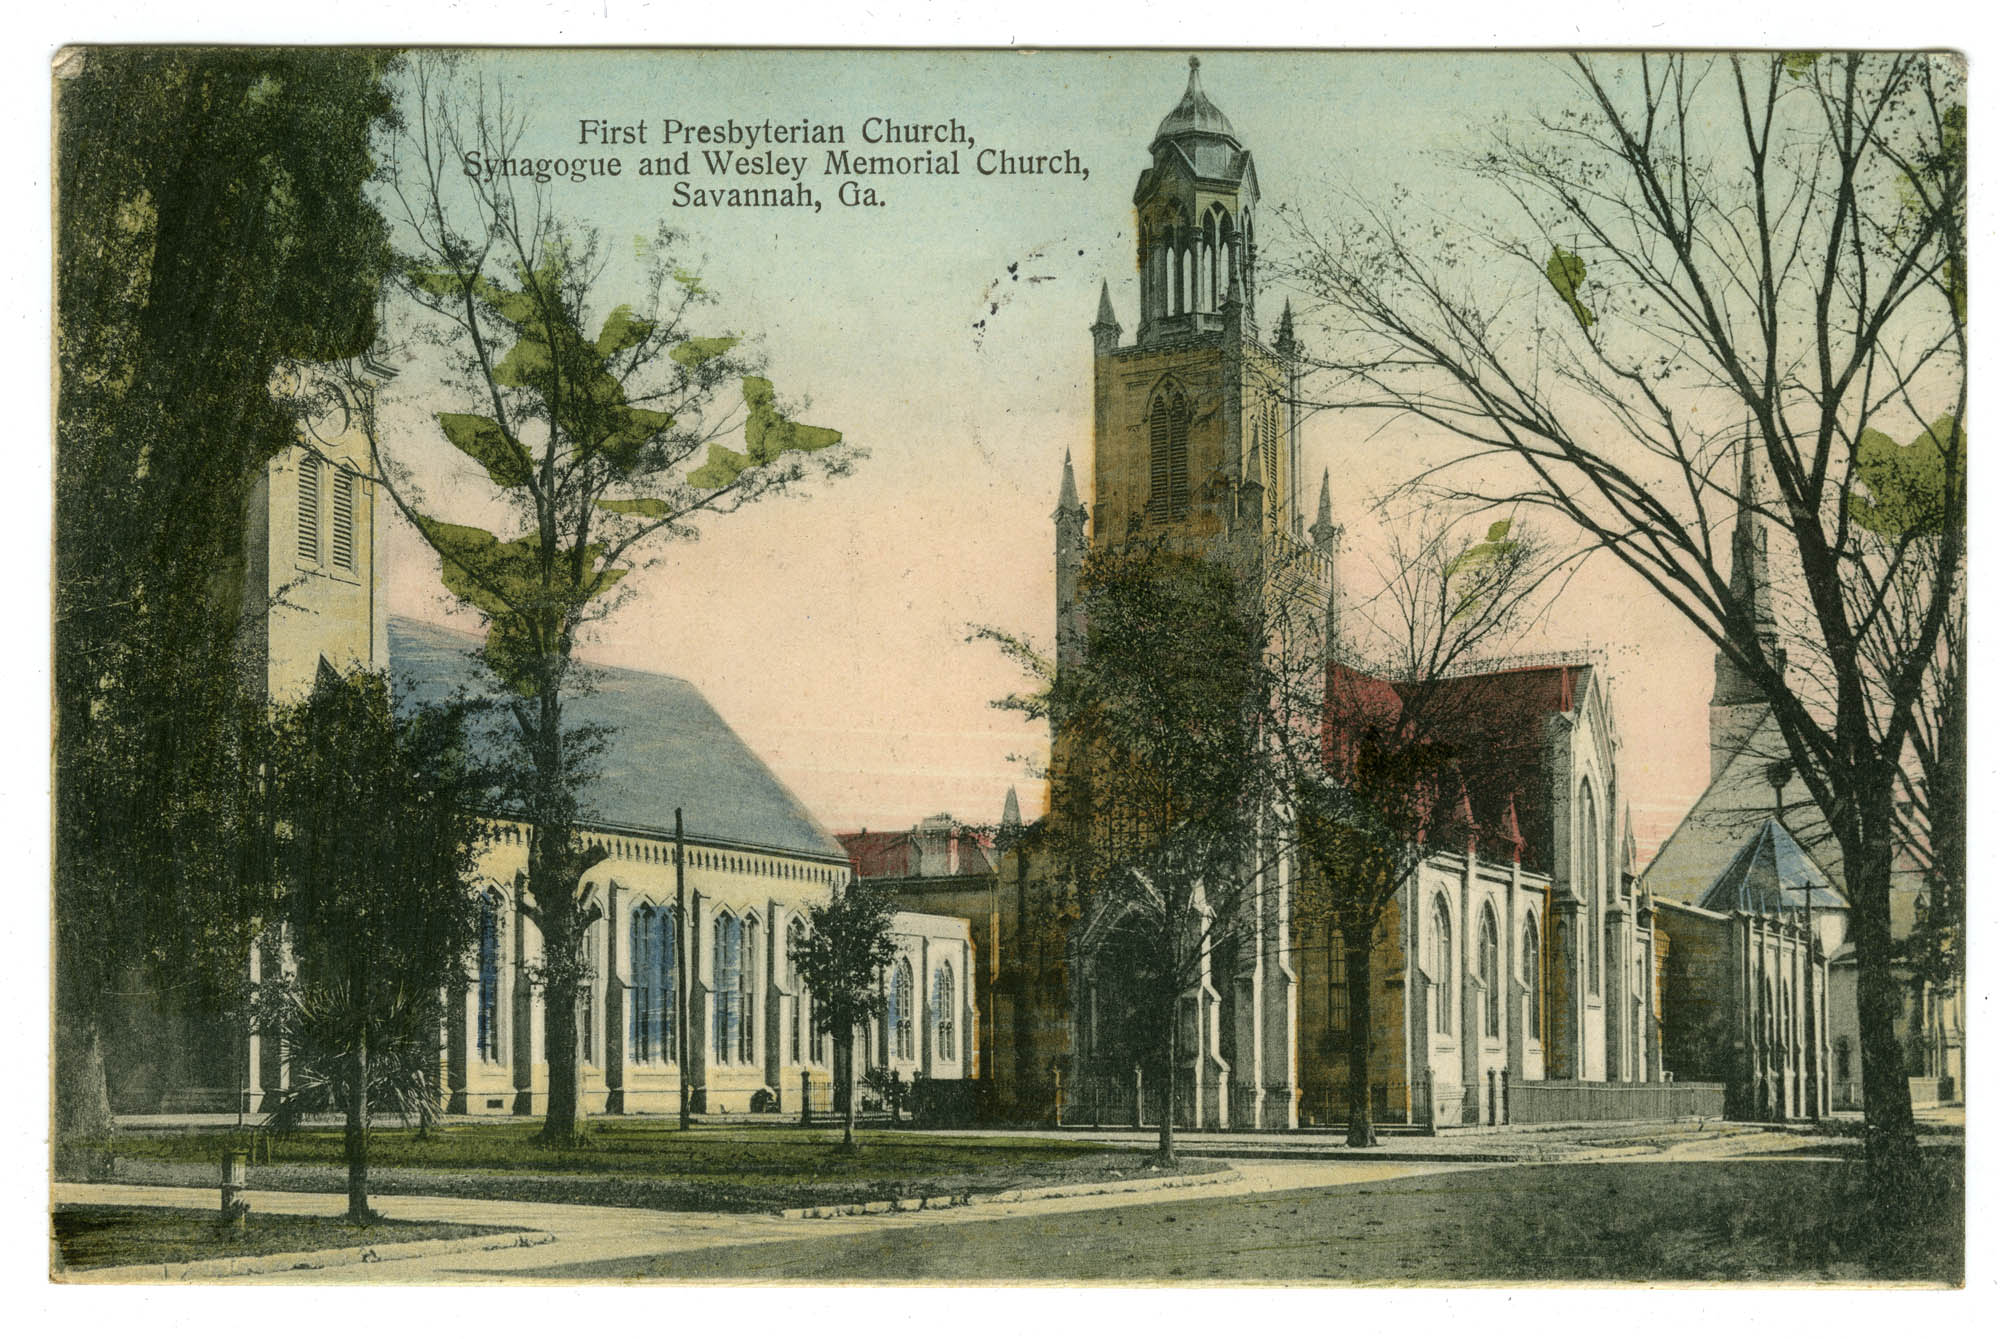 First Presbyterian Church, Synagogue and Wesley Memorial Church, Savannah, Ga.